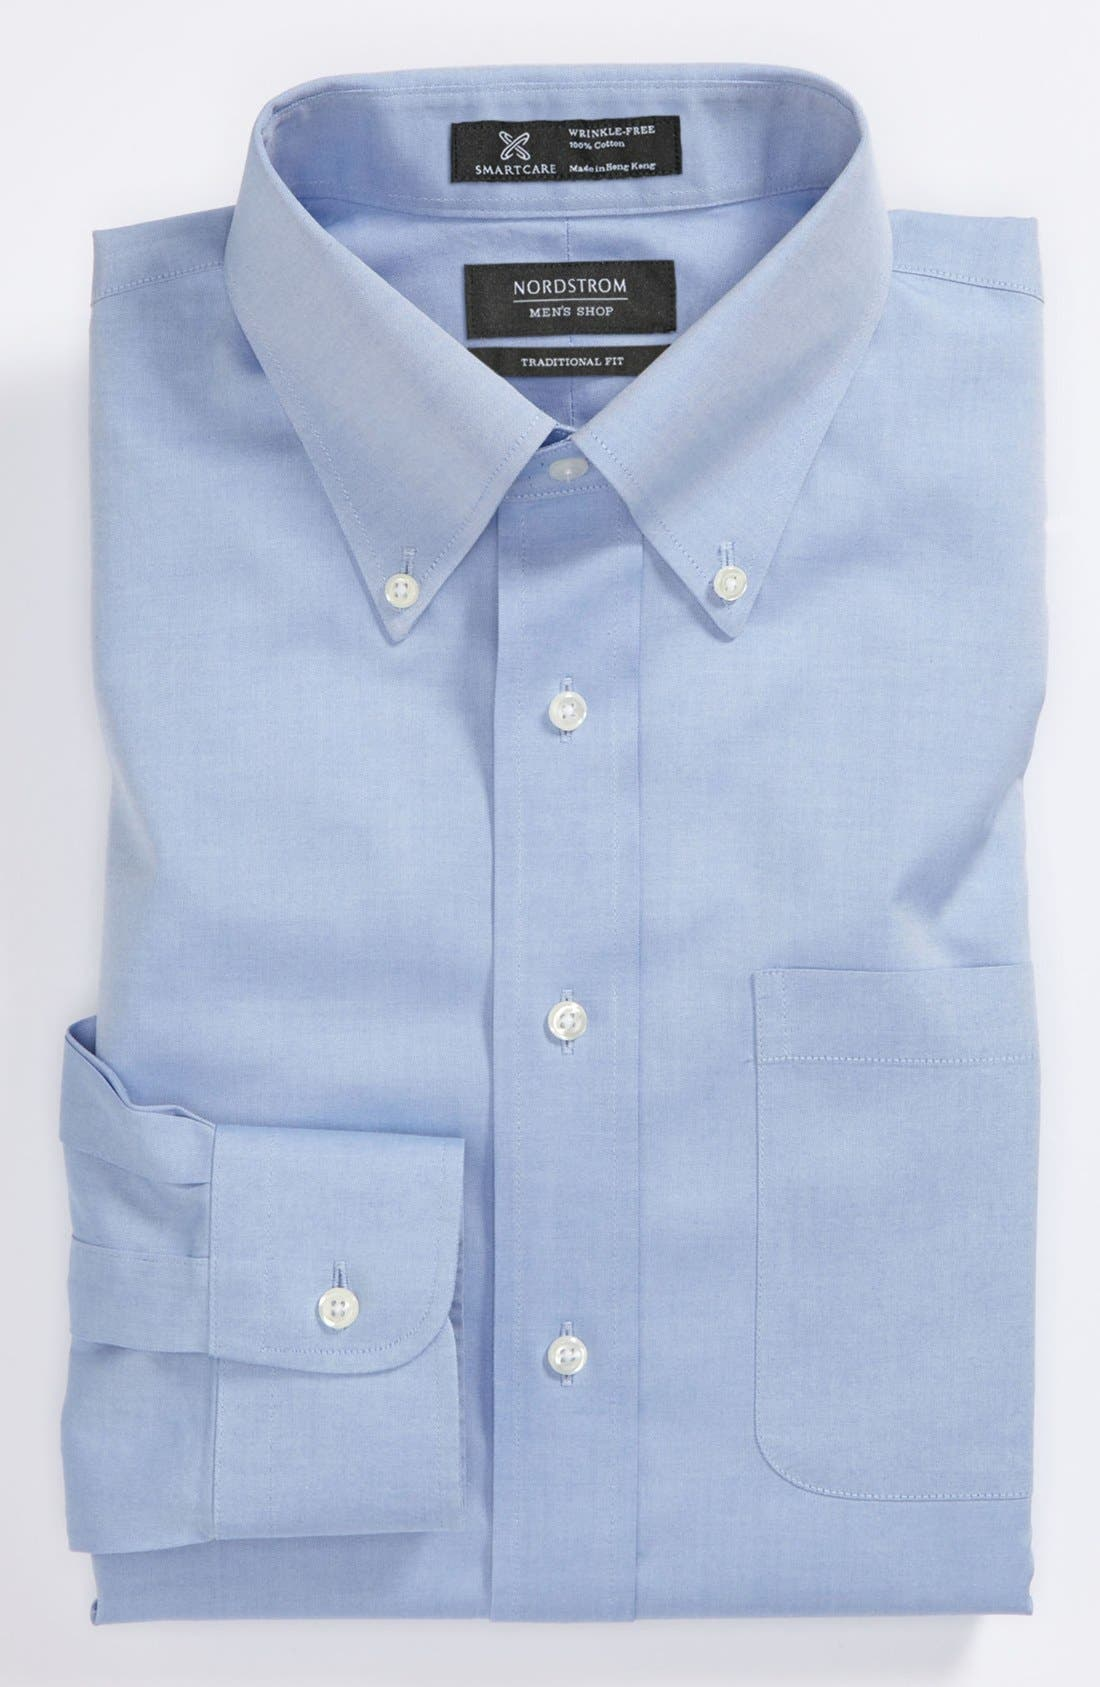 Main Image - Nordstrom Men's Shop Smartcare™ Traditional Fit Pinpoint Dress Shirt